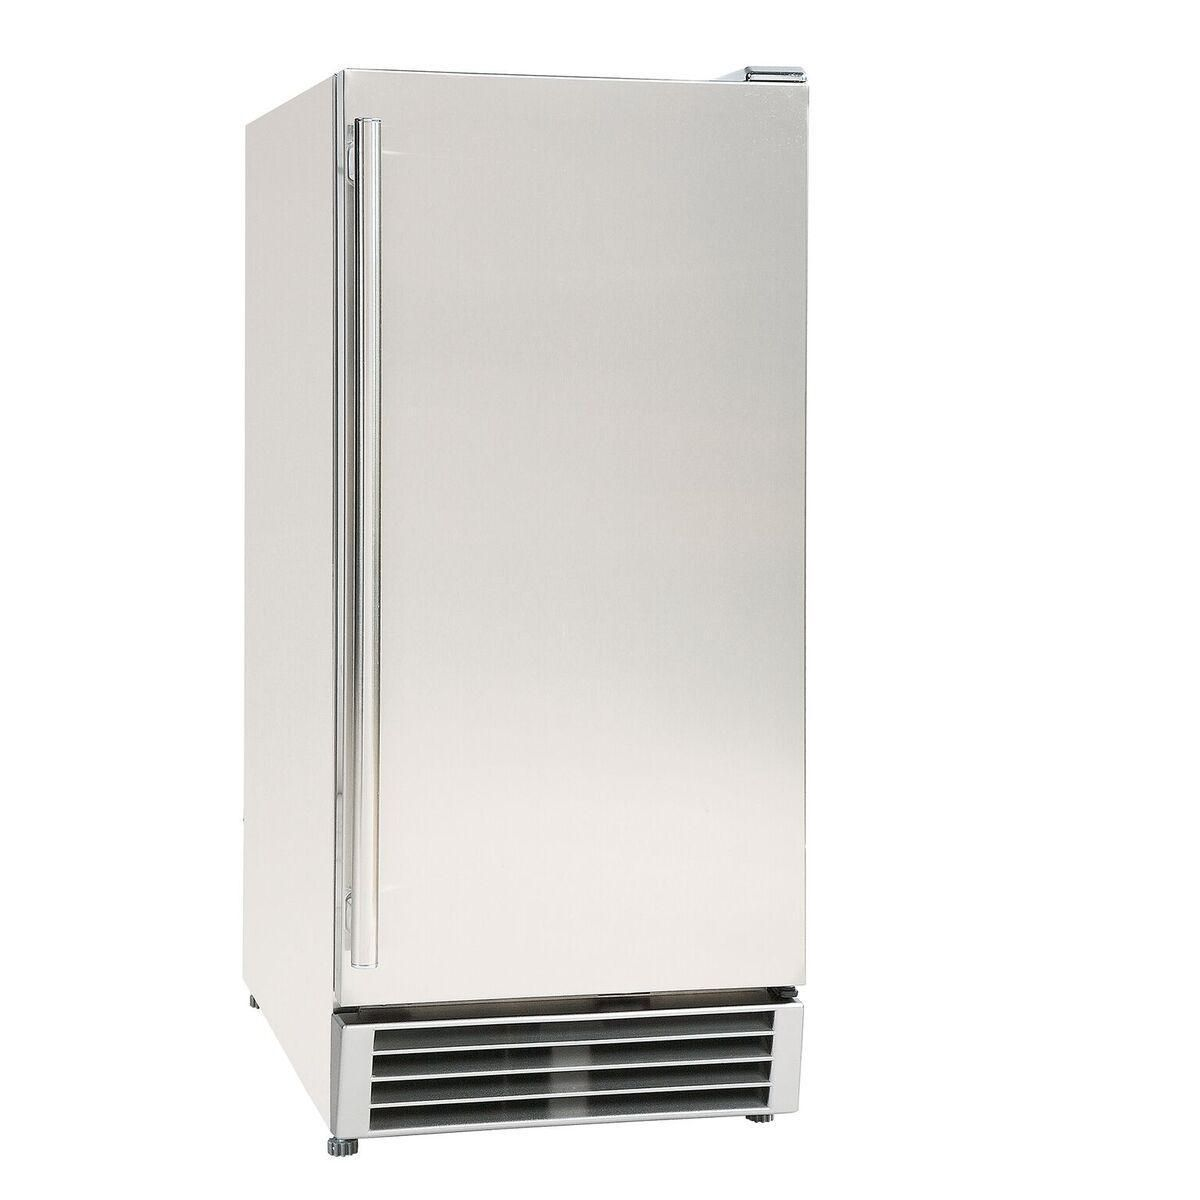 Maxx Ice 3 cu. ft. Outdoor Commercial Refrigerator | Walmart Canada